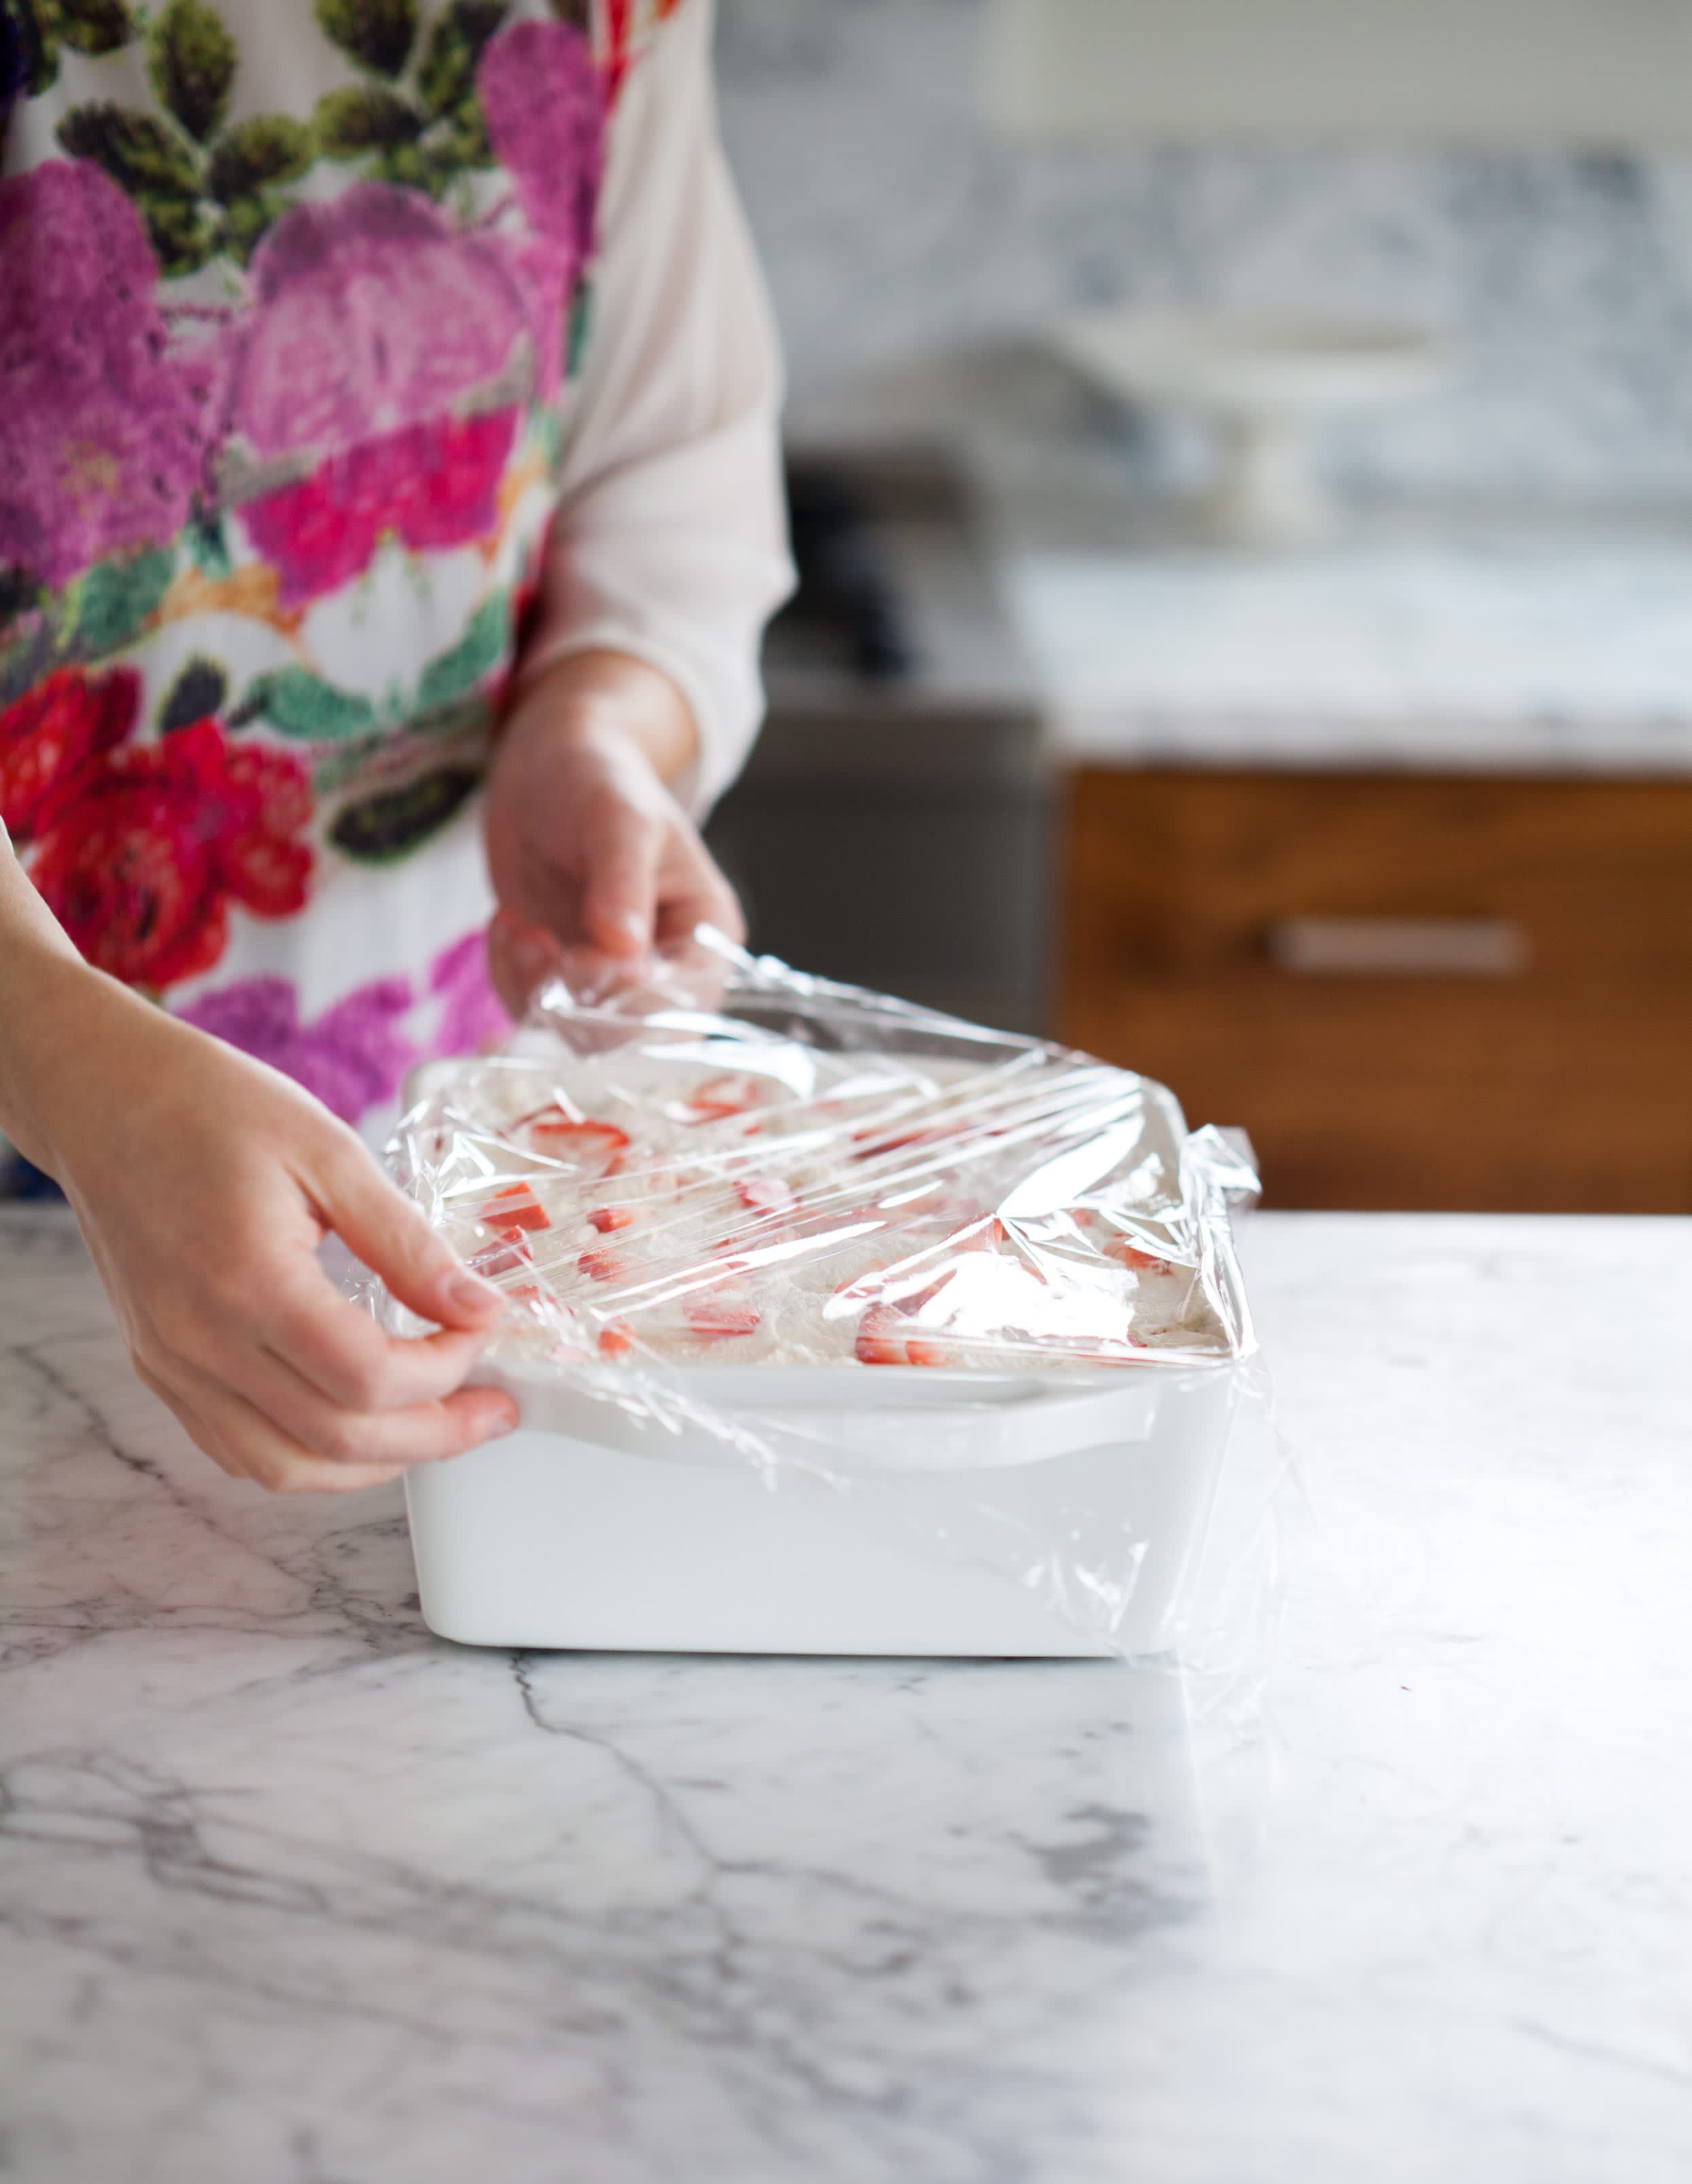 How To Make a No-Bake Icebox Cake: gallery image 15